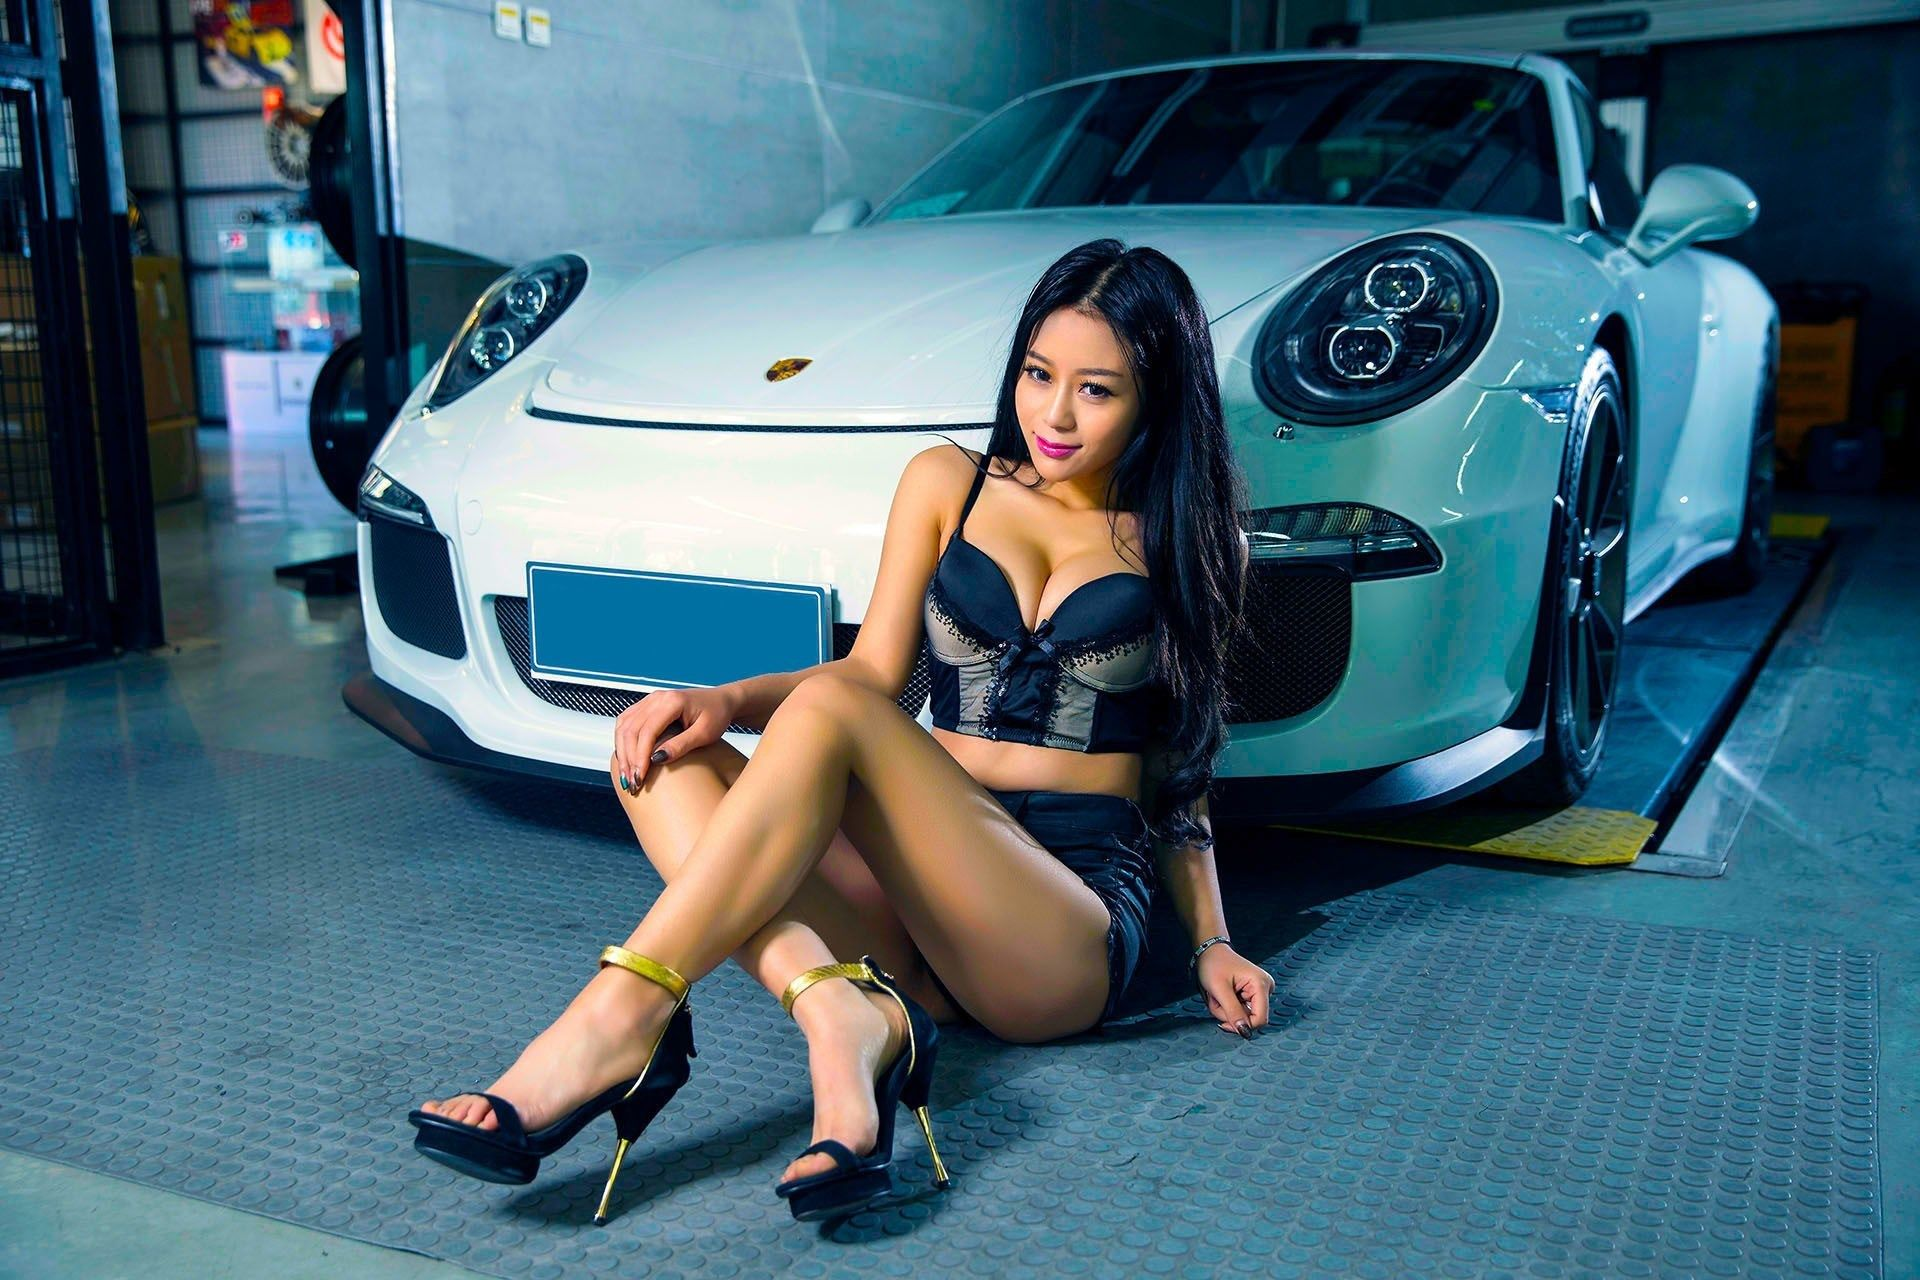 and Porsche nude girls cars